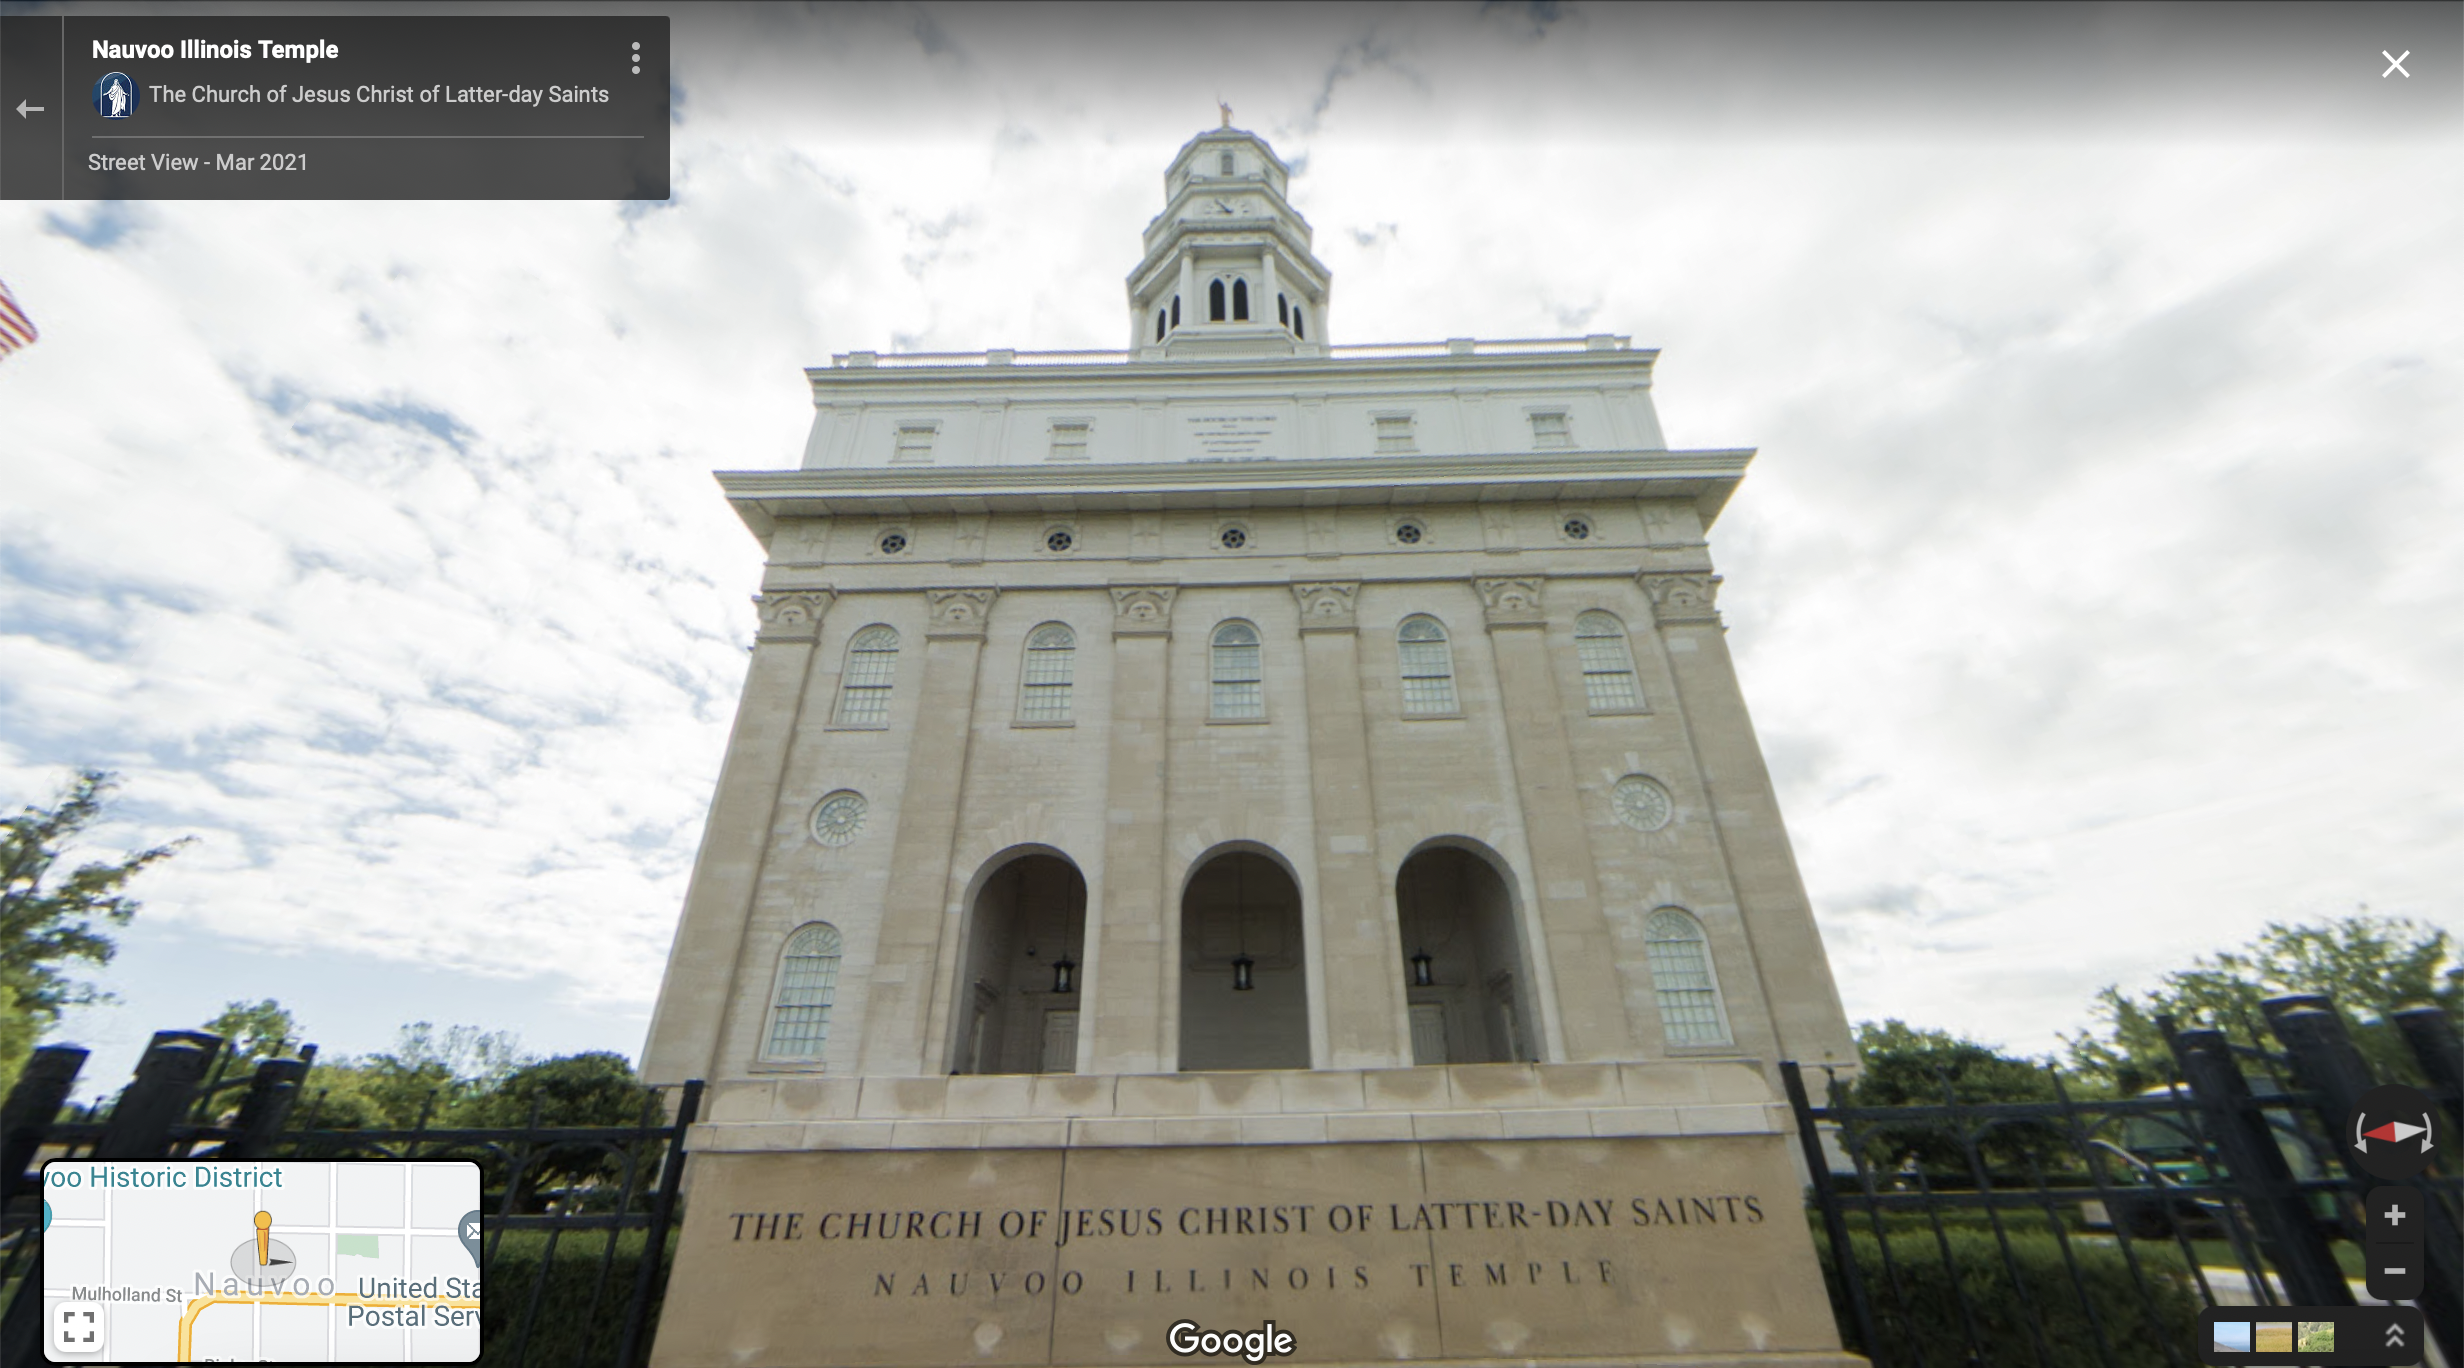 Screenshot of the Google Maps 360 view of the Nauvoo Temple